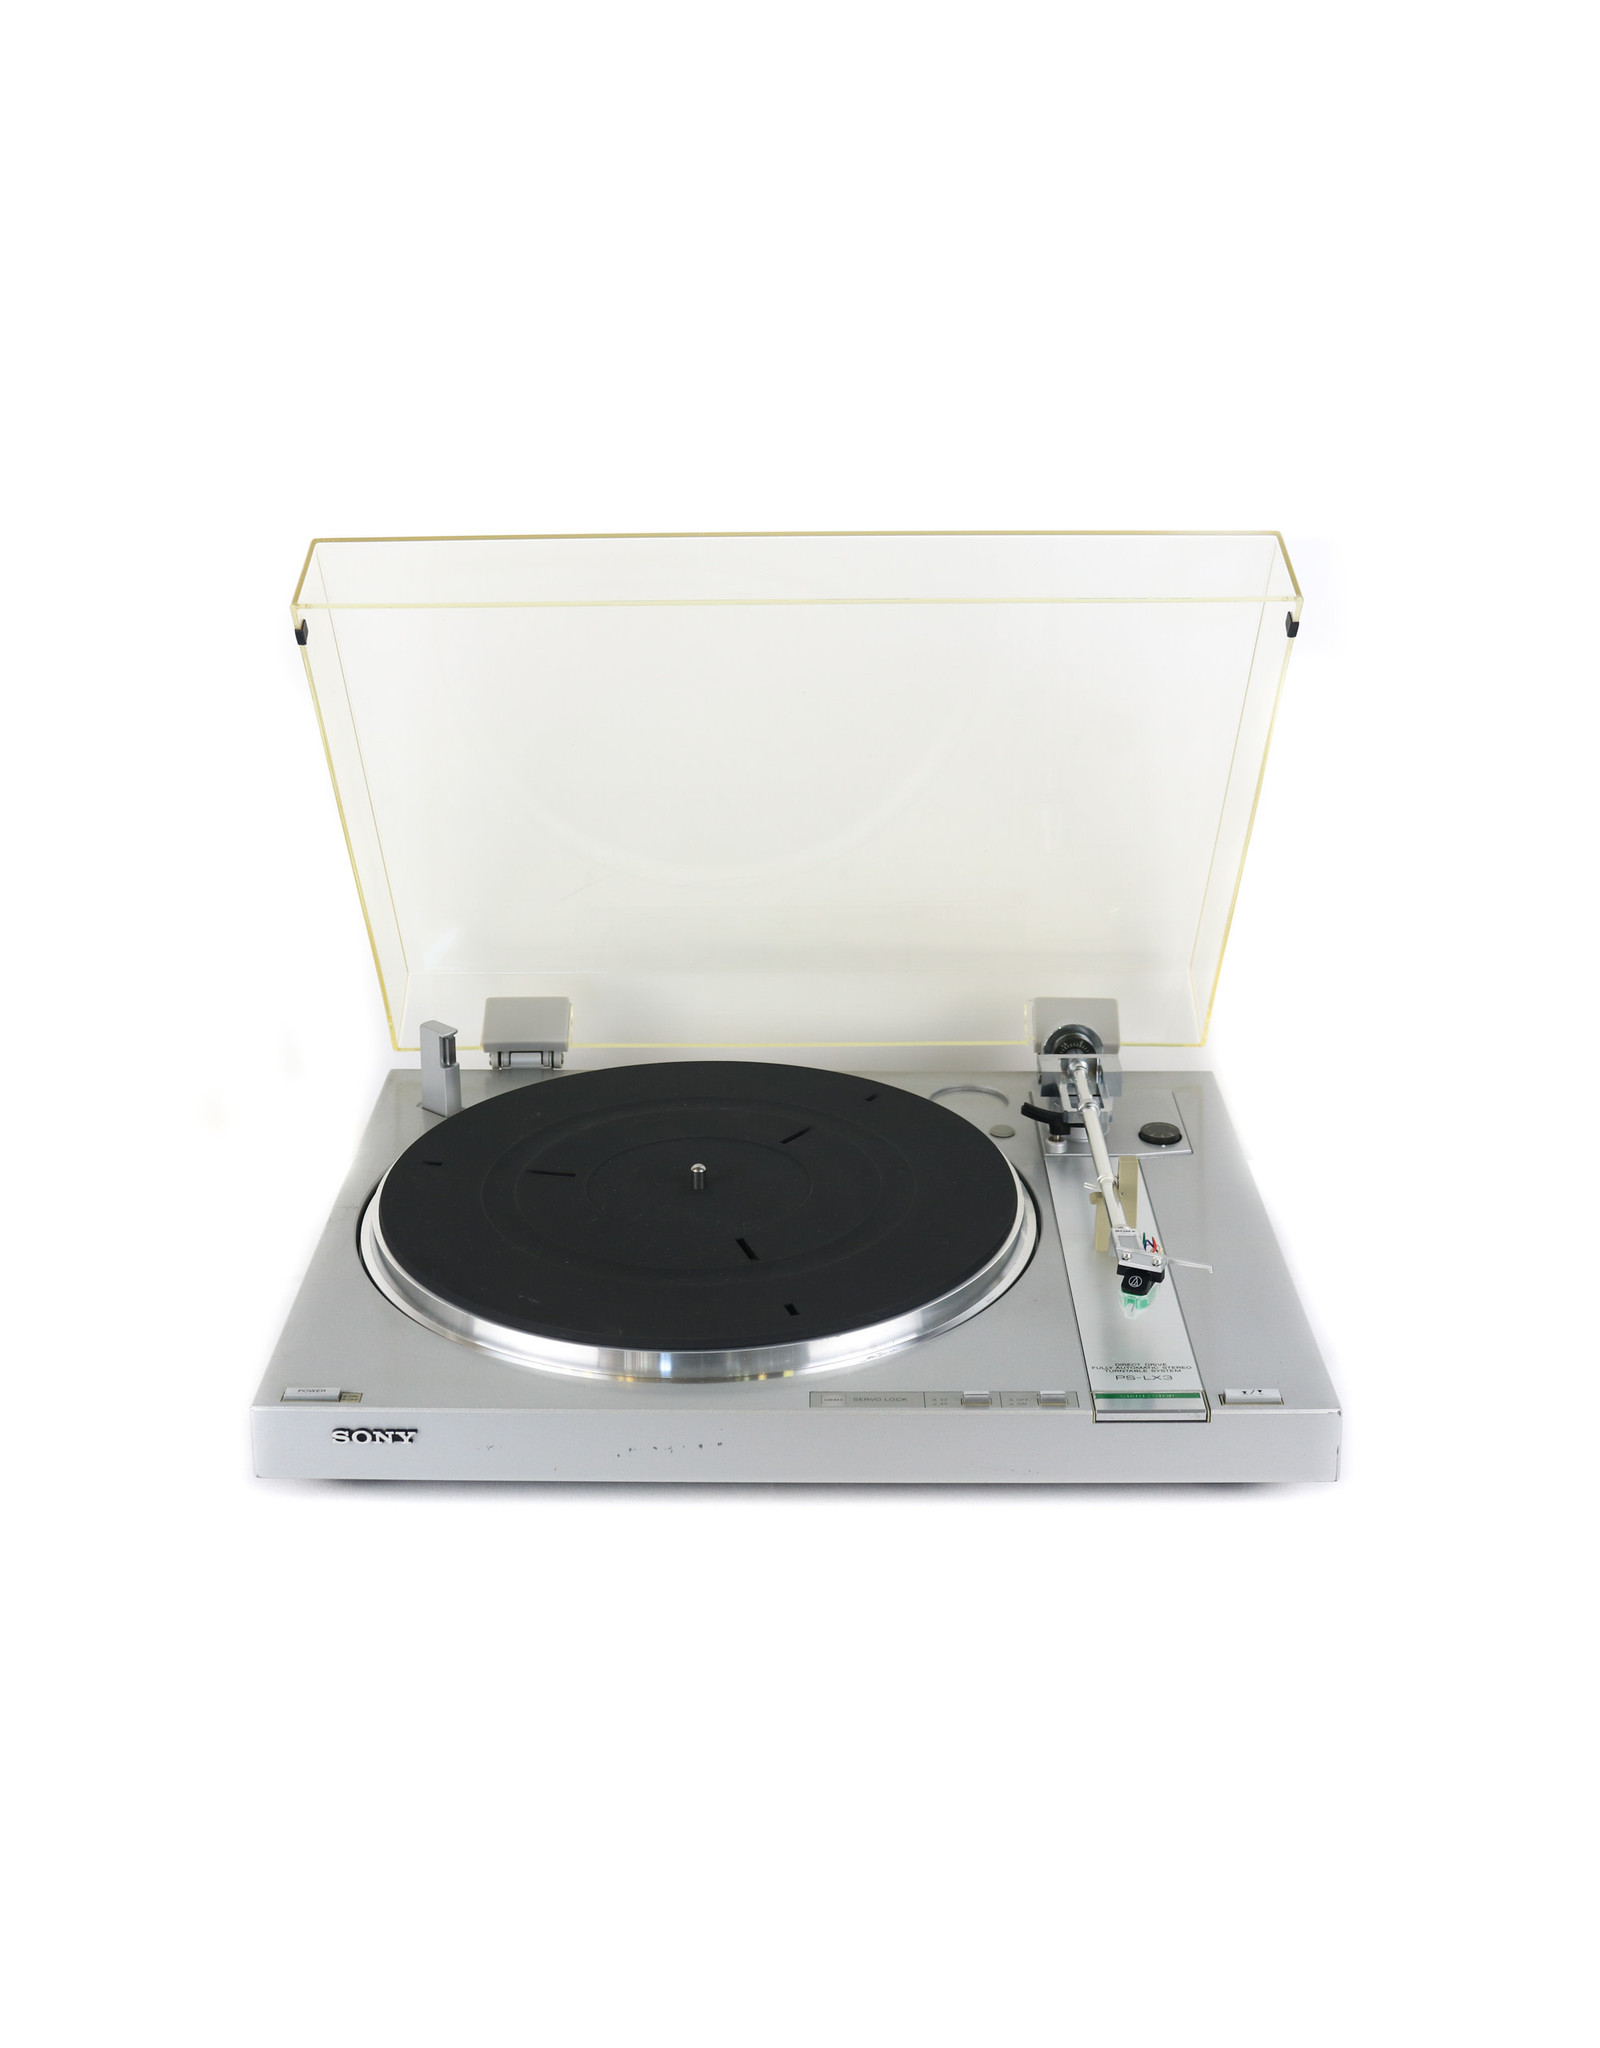 Sony Sony PS-LX3 Turntable USED